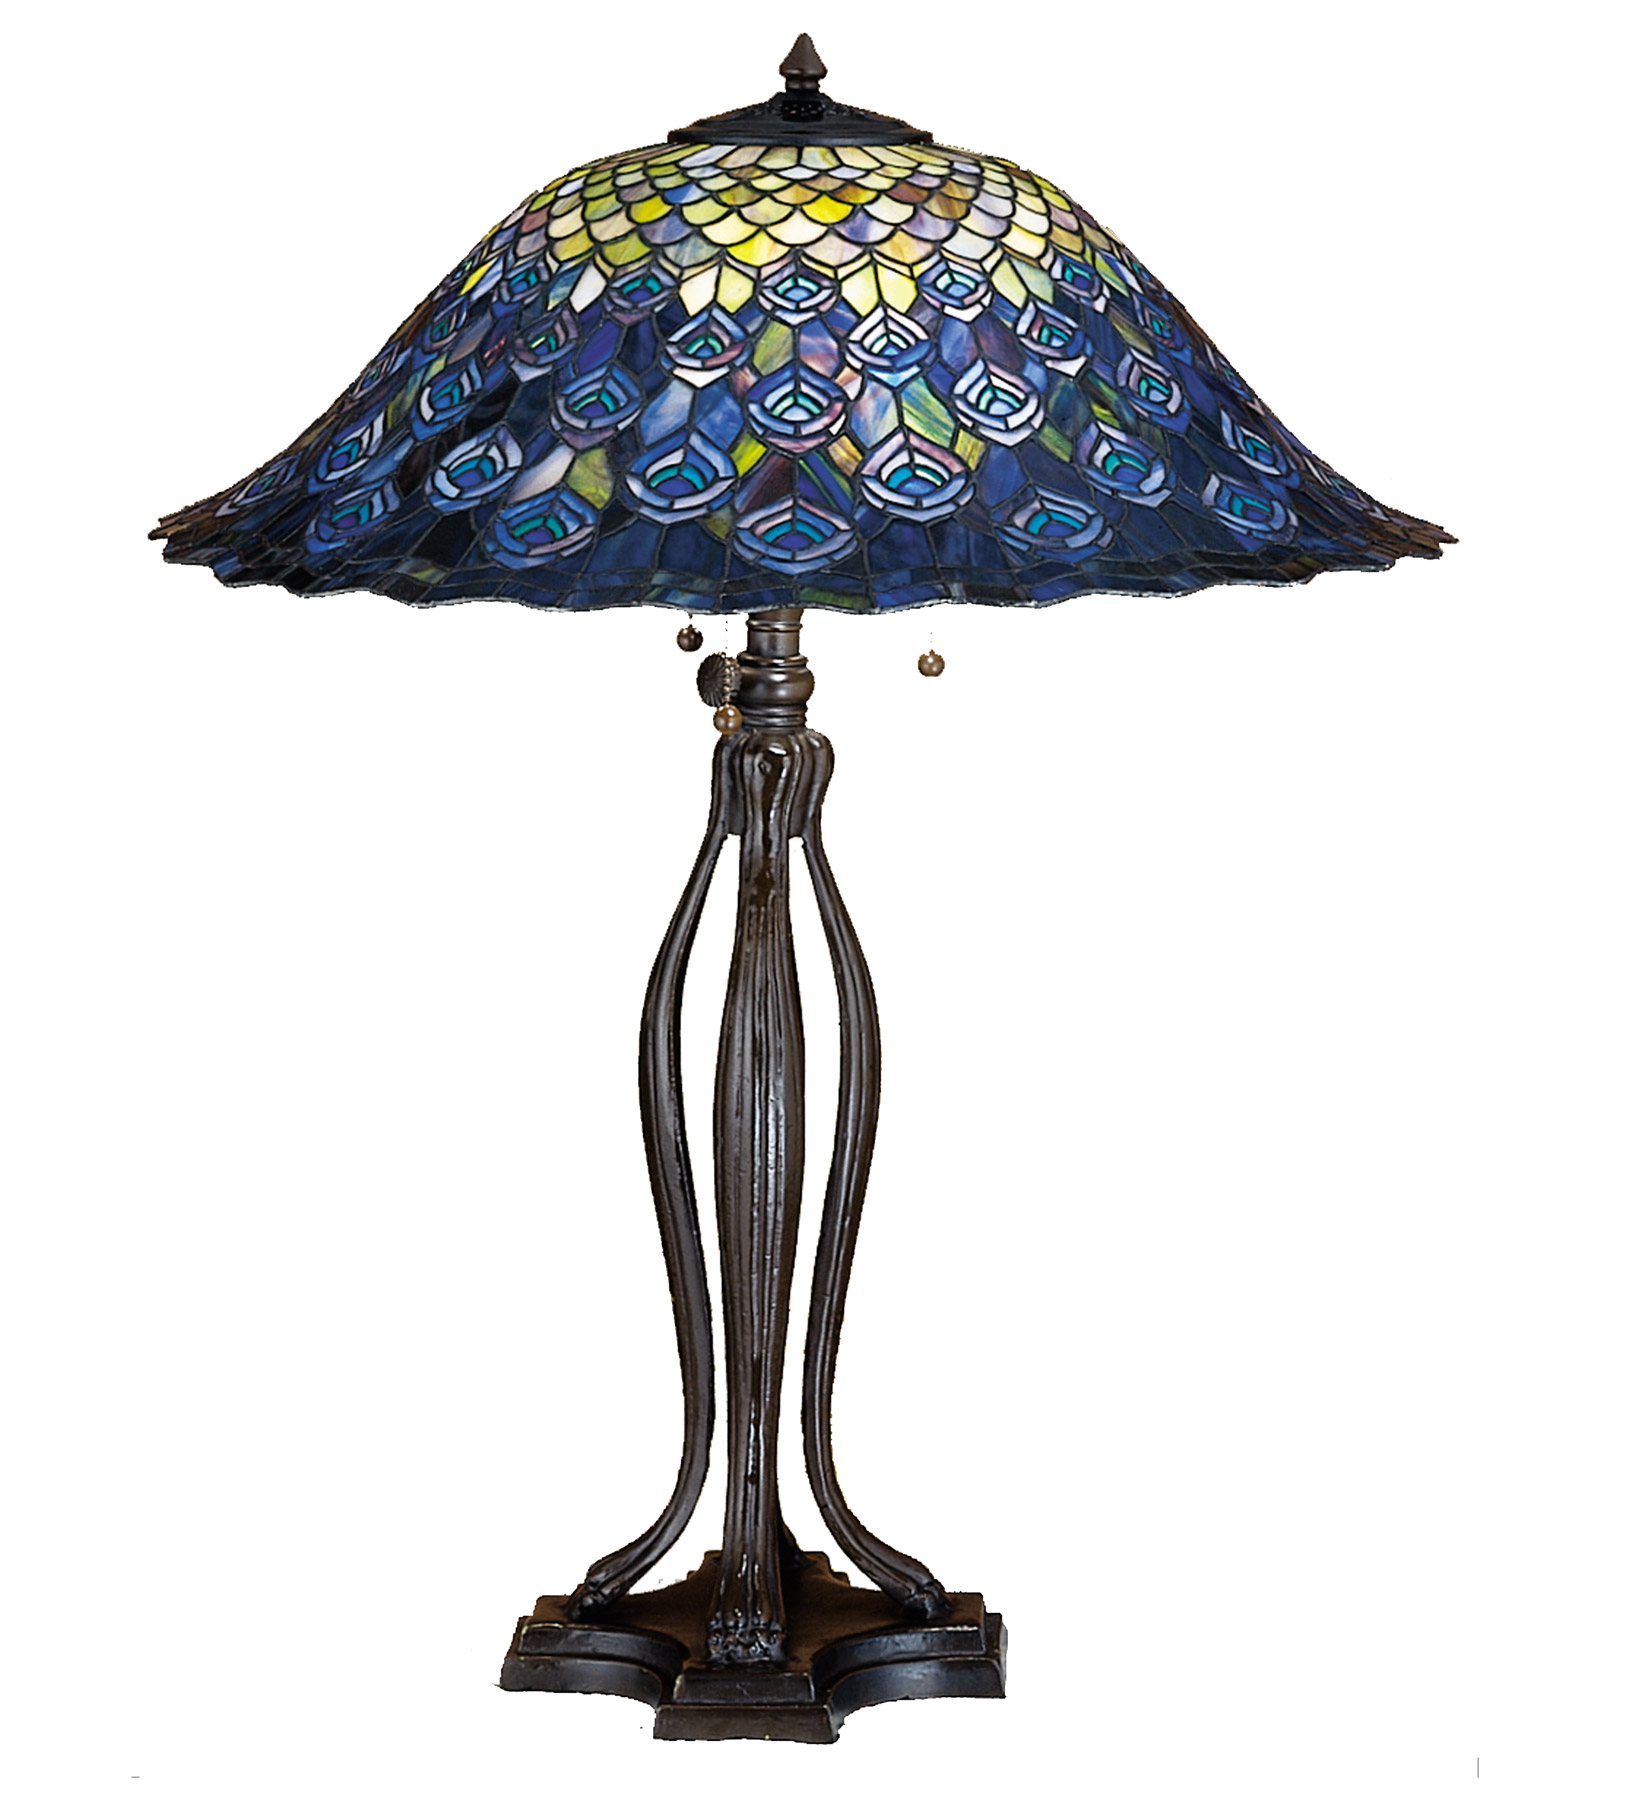 home lamps table lamps standard table lamps meyda 28504. Black Bedroom Furniture Sets. Home Design Ideas